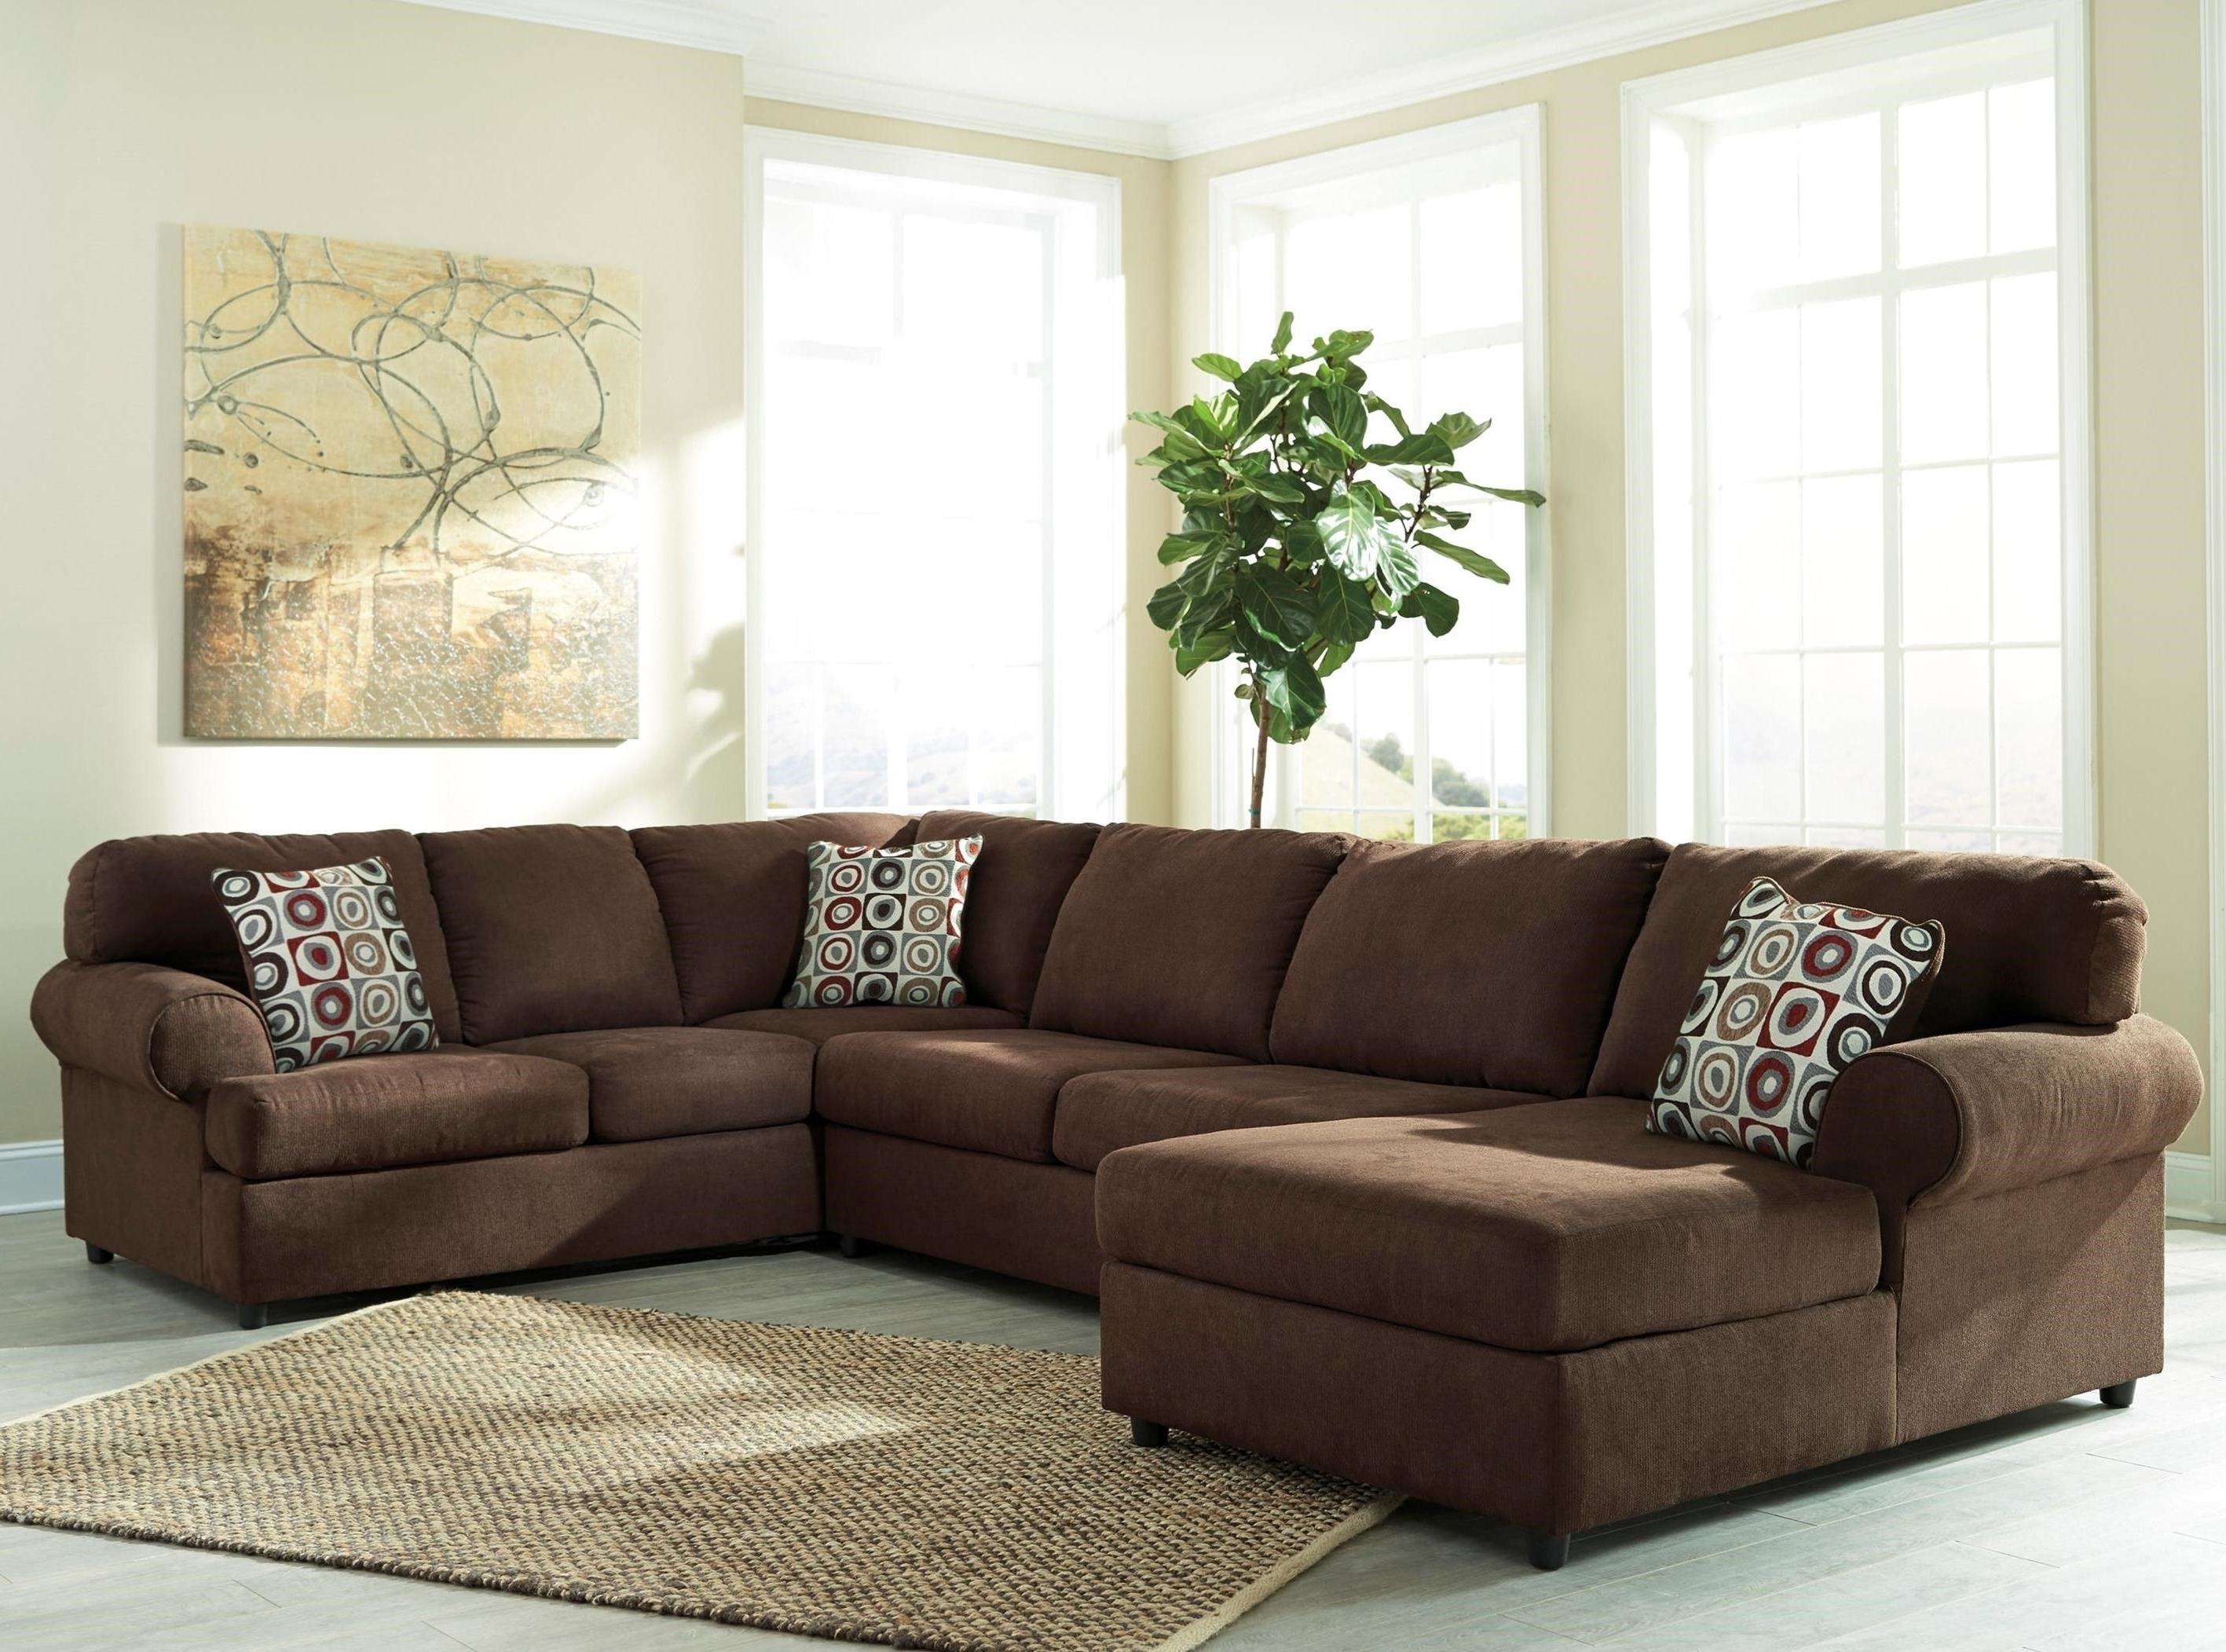 Widely Used Royal Furniture Sectional Sofas Pertaining To Jayceon 3 Piece Sectional With Left Chaisesignature Design (View 10 of 15)